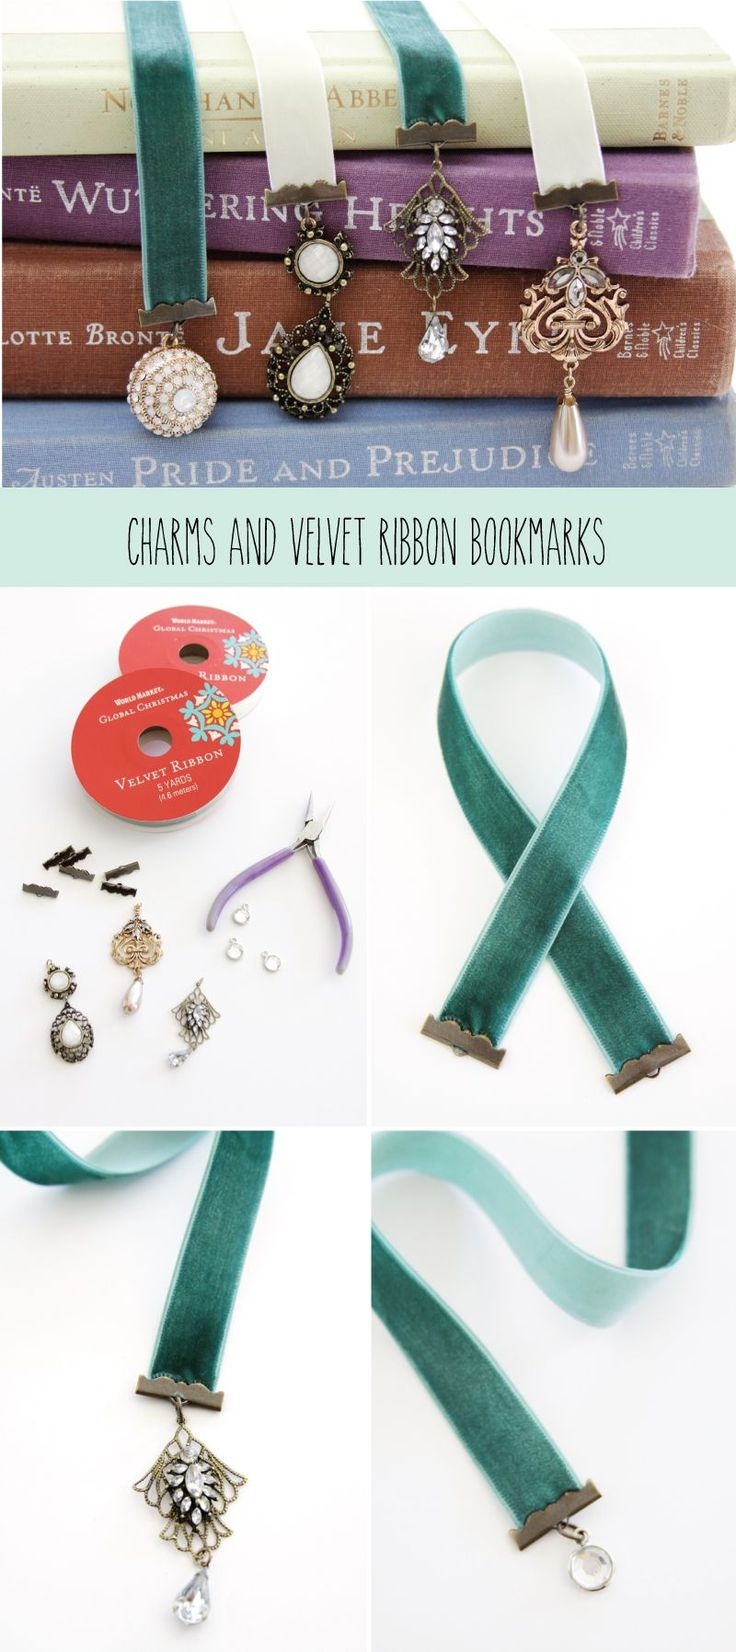 Charm-and-Velvet-Ribbon-Bookmarks